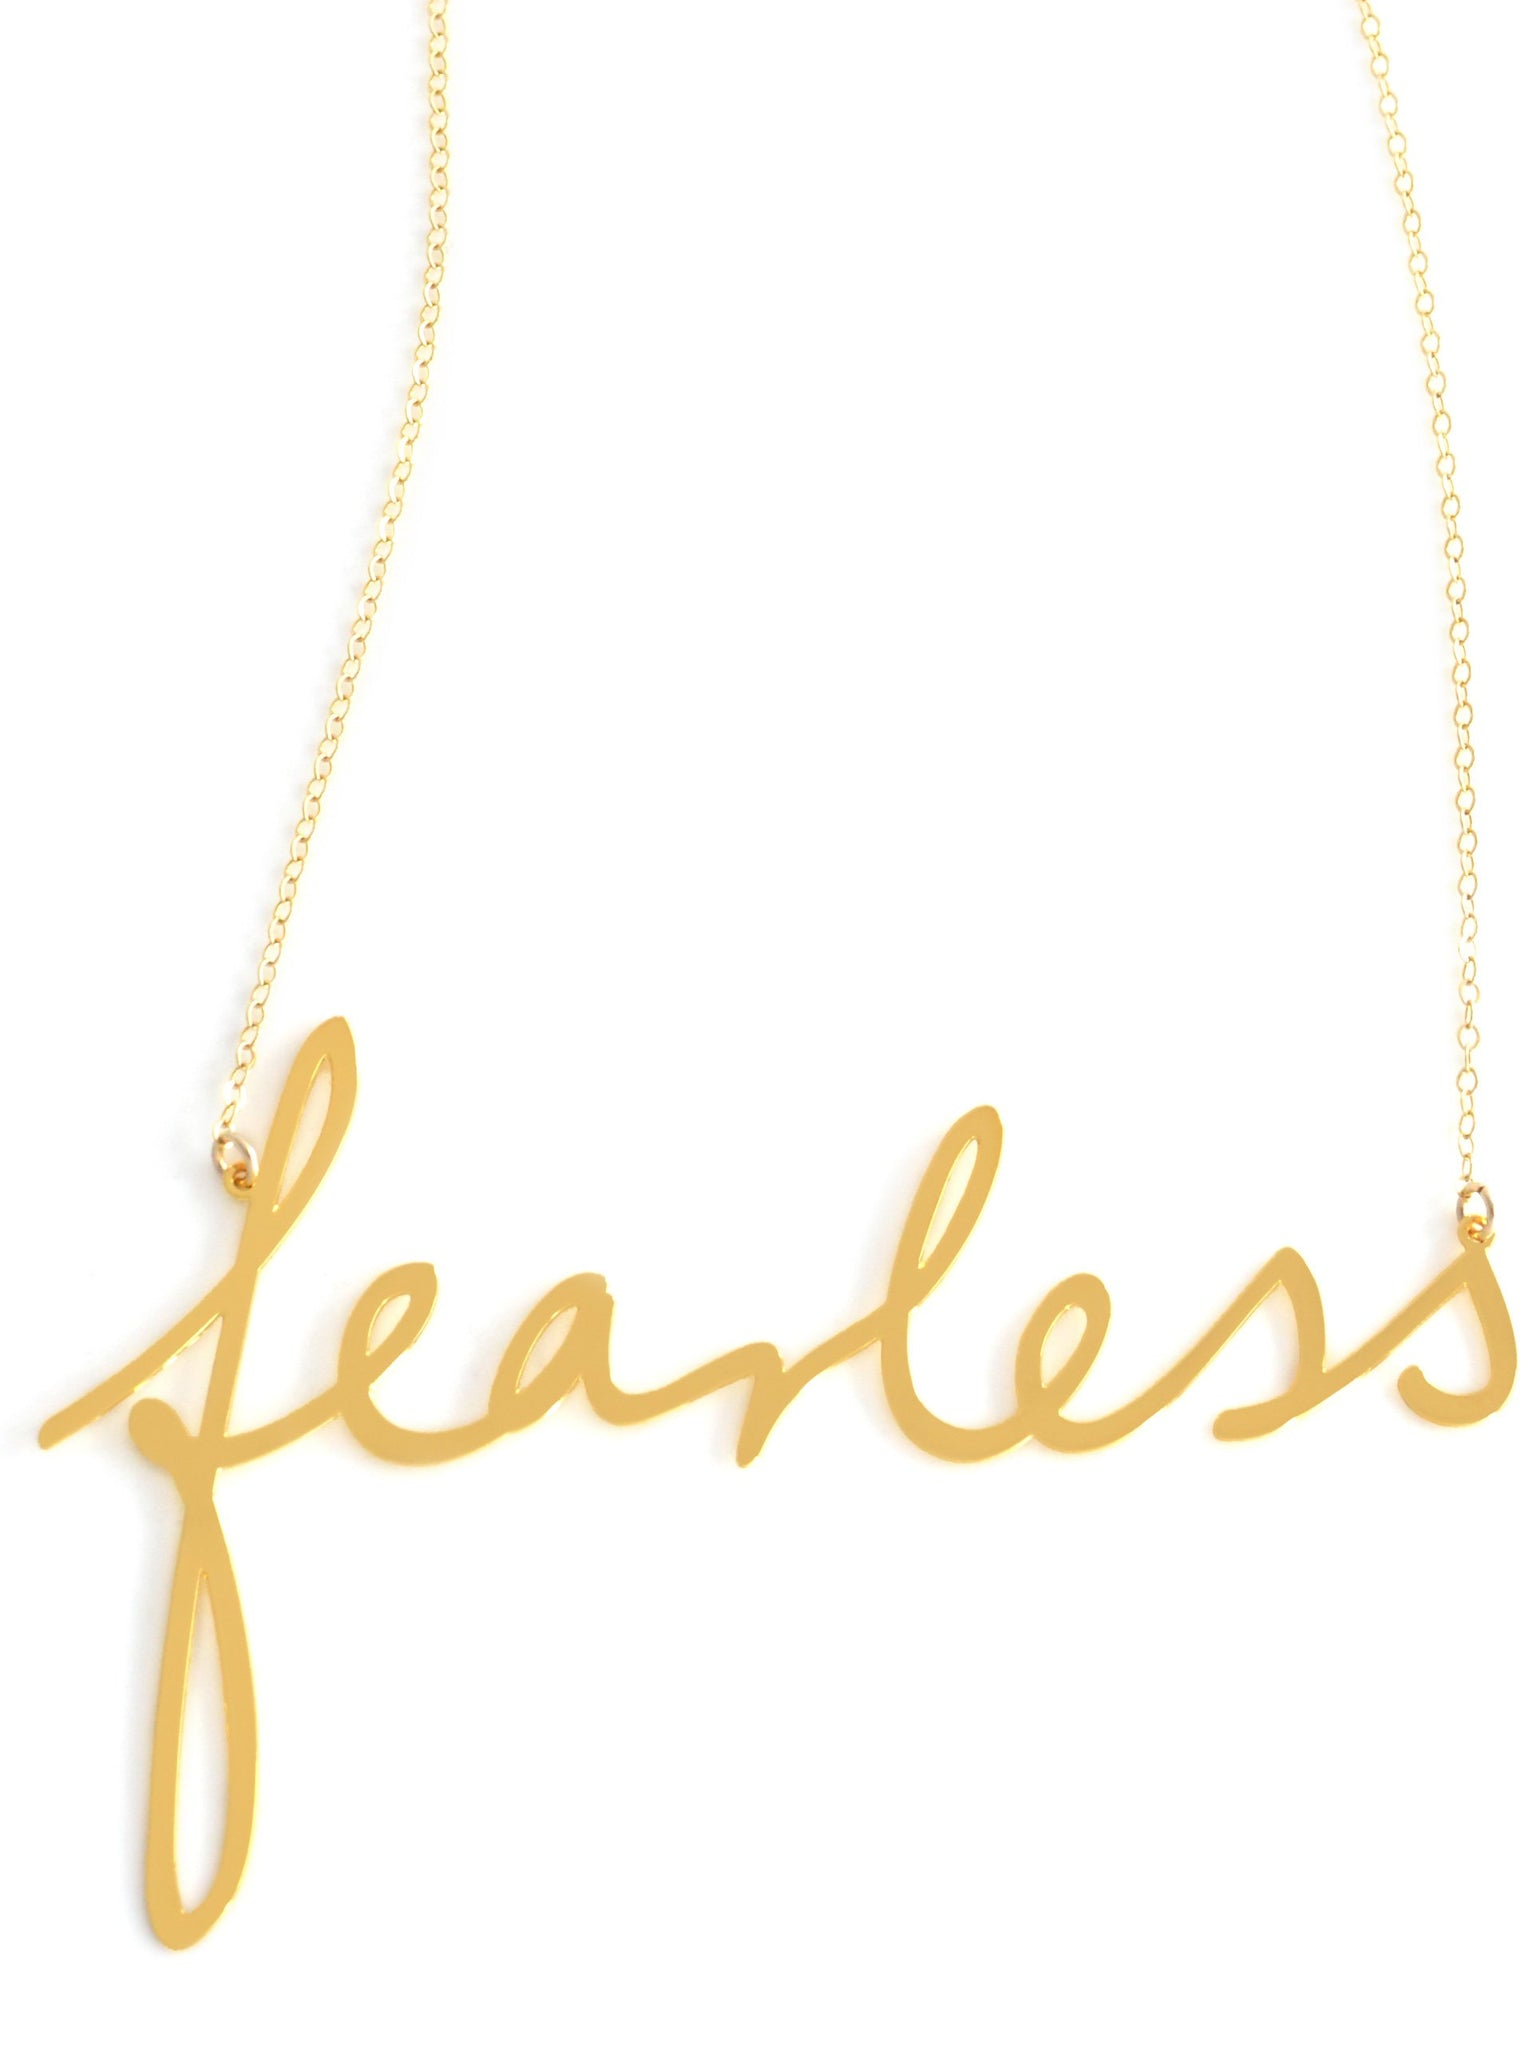 Fearless Necklace - Brevity Jewelry - Made in USA - Affordable Gold and Silver Jewelry